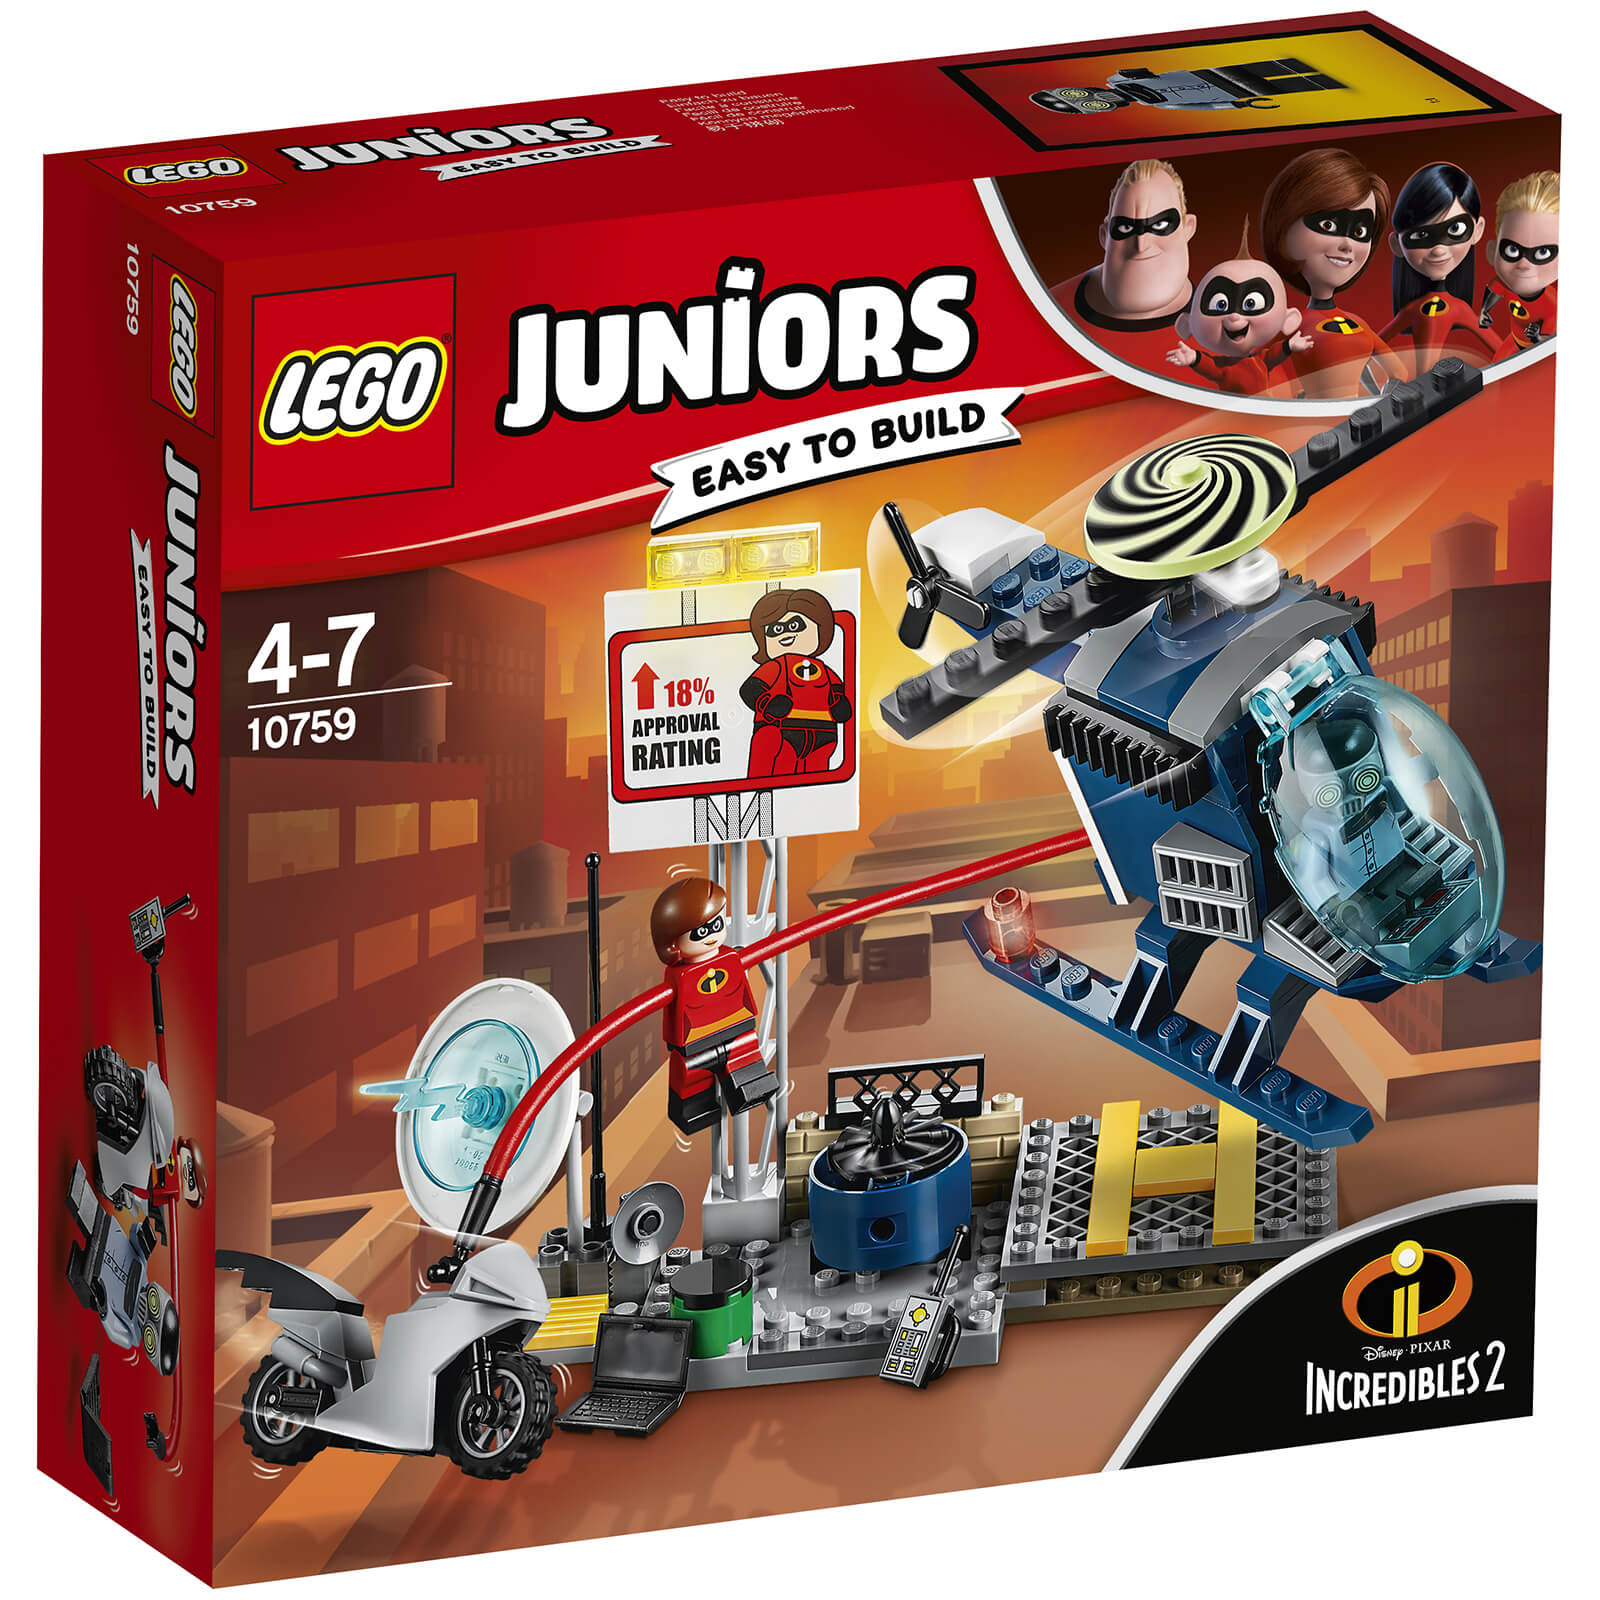 LEGO Juniors Disney Incredibles 2: Elastigirl